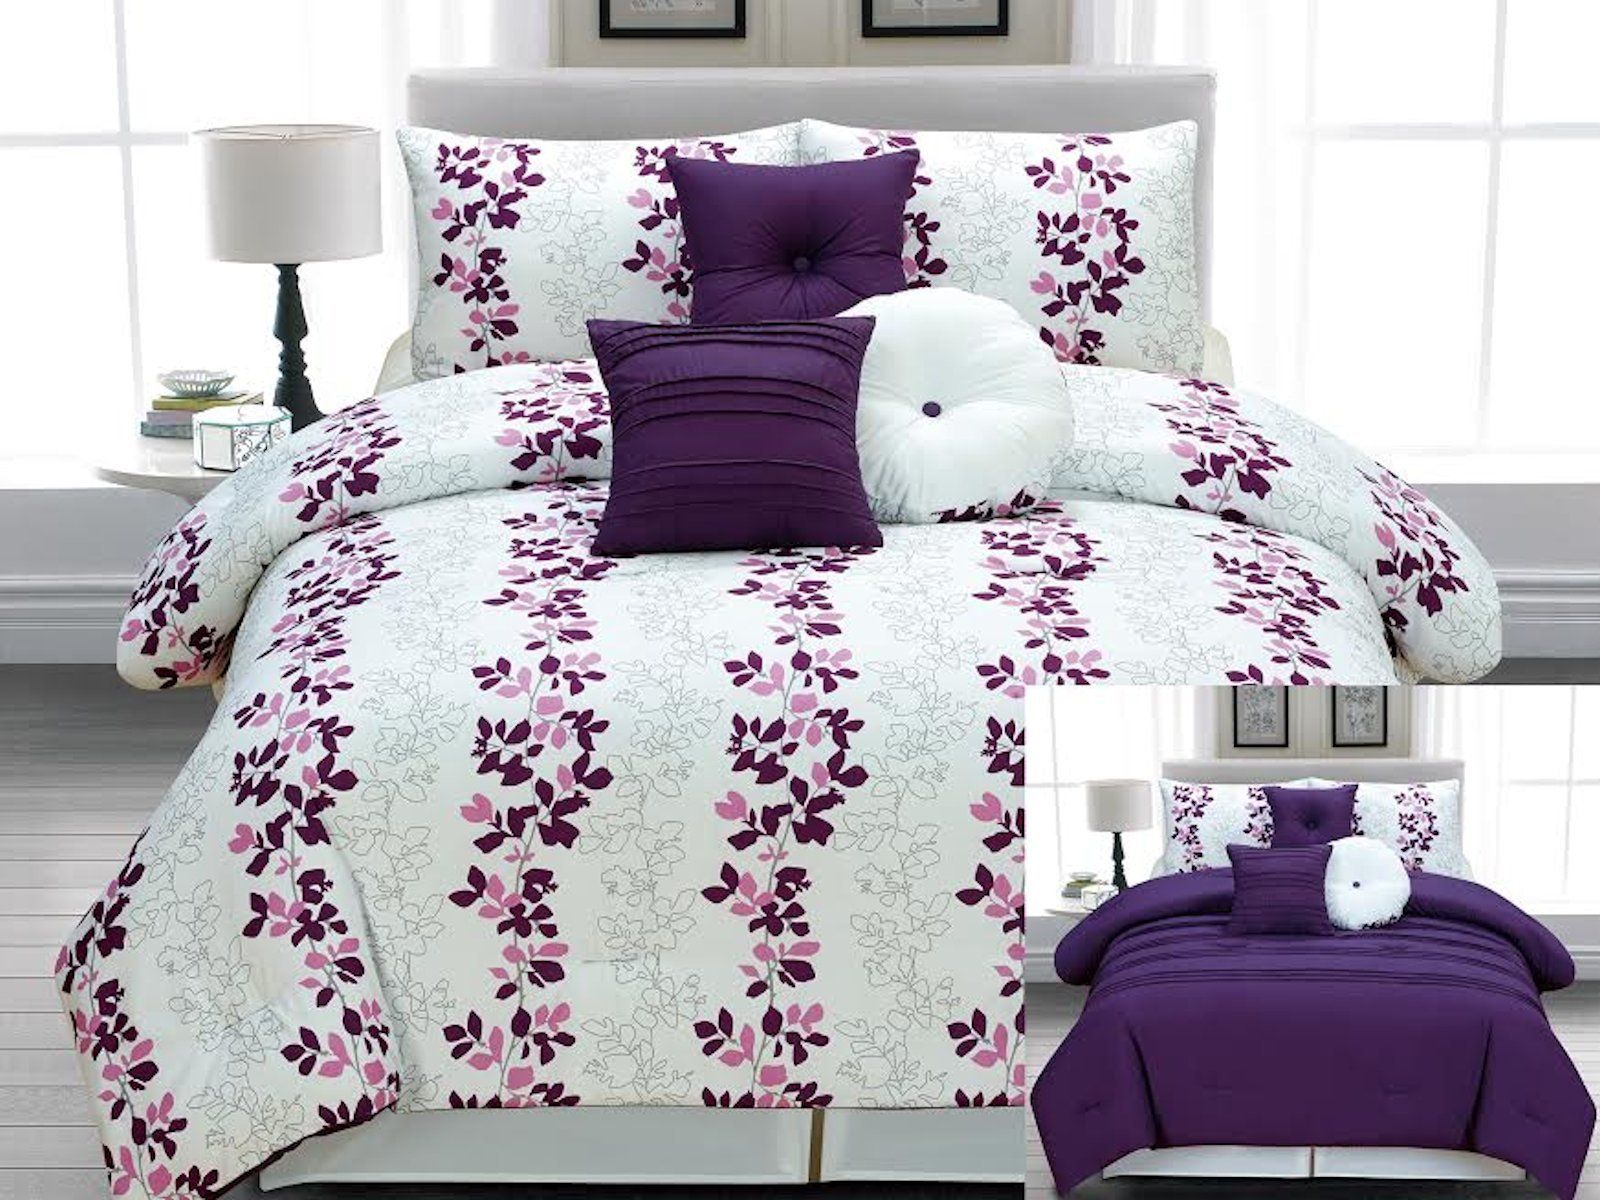 roses duvet pretentious turquoise bedding also bed pink cover astonishing tokida for and twin floral barton purple set beddingset vintage wa sets old cream